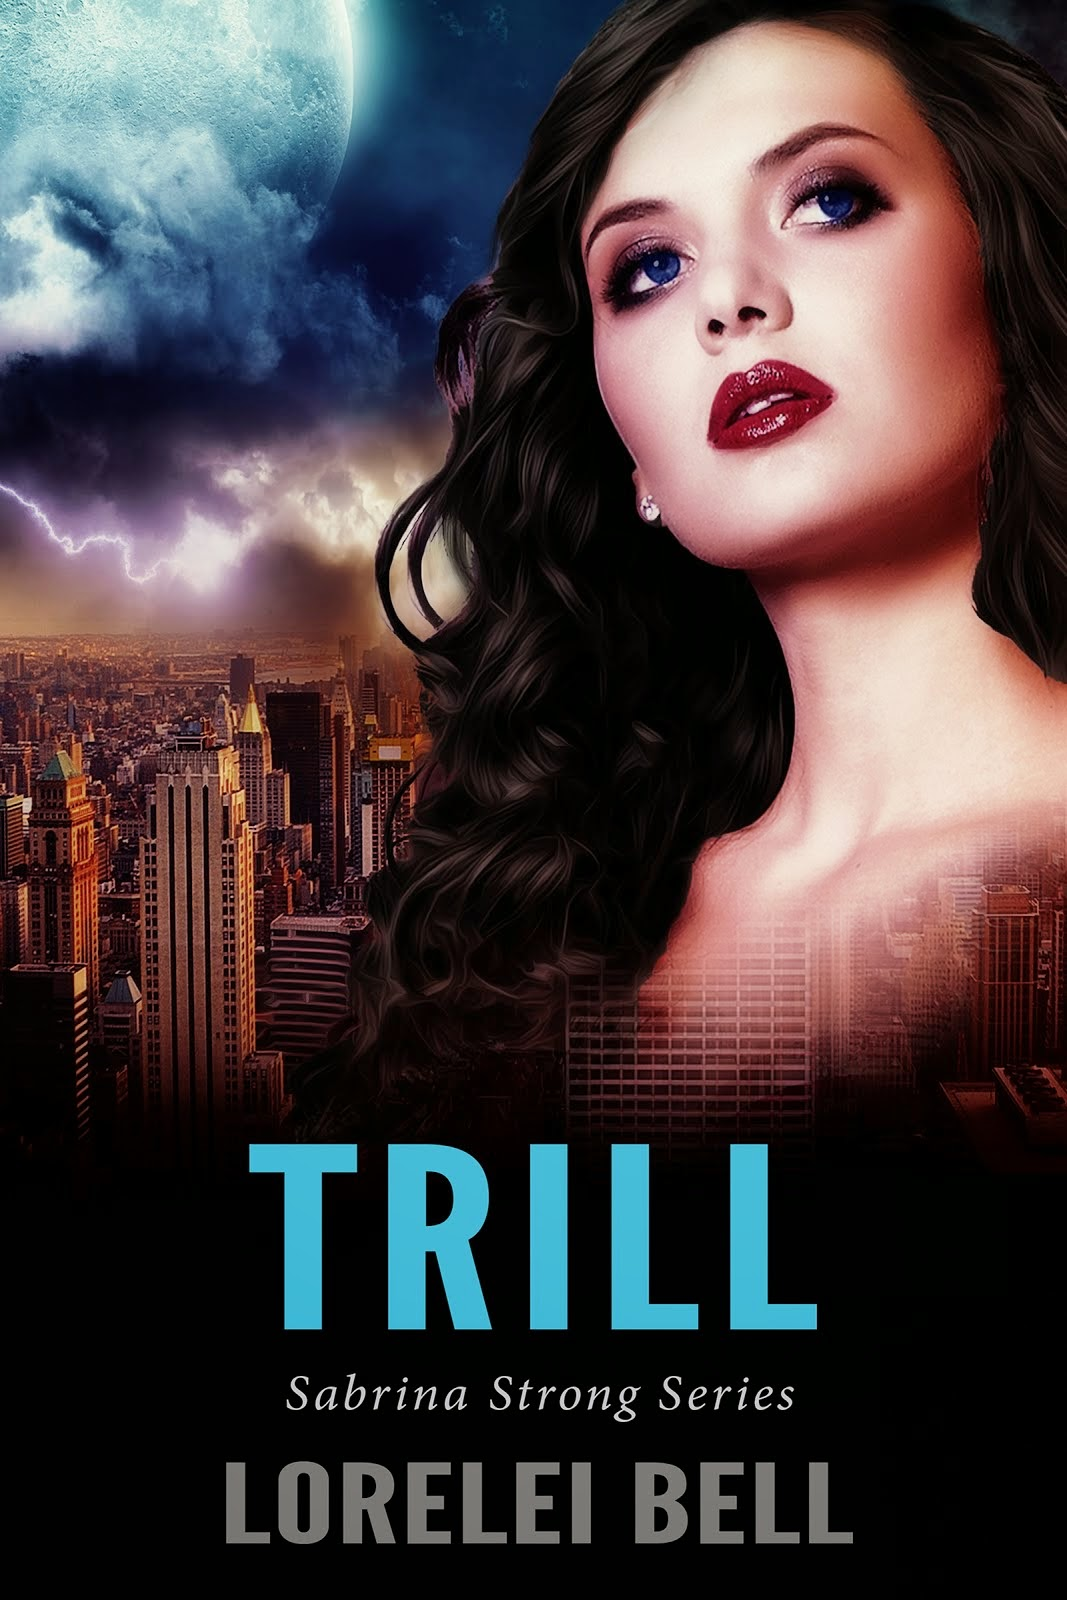 TRILL -2nd book in Sabrina Strong series